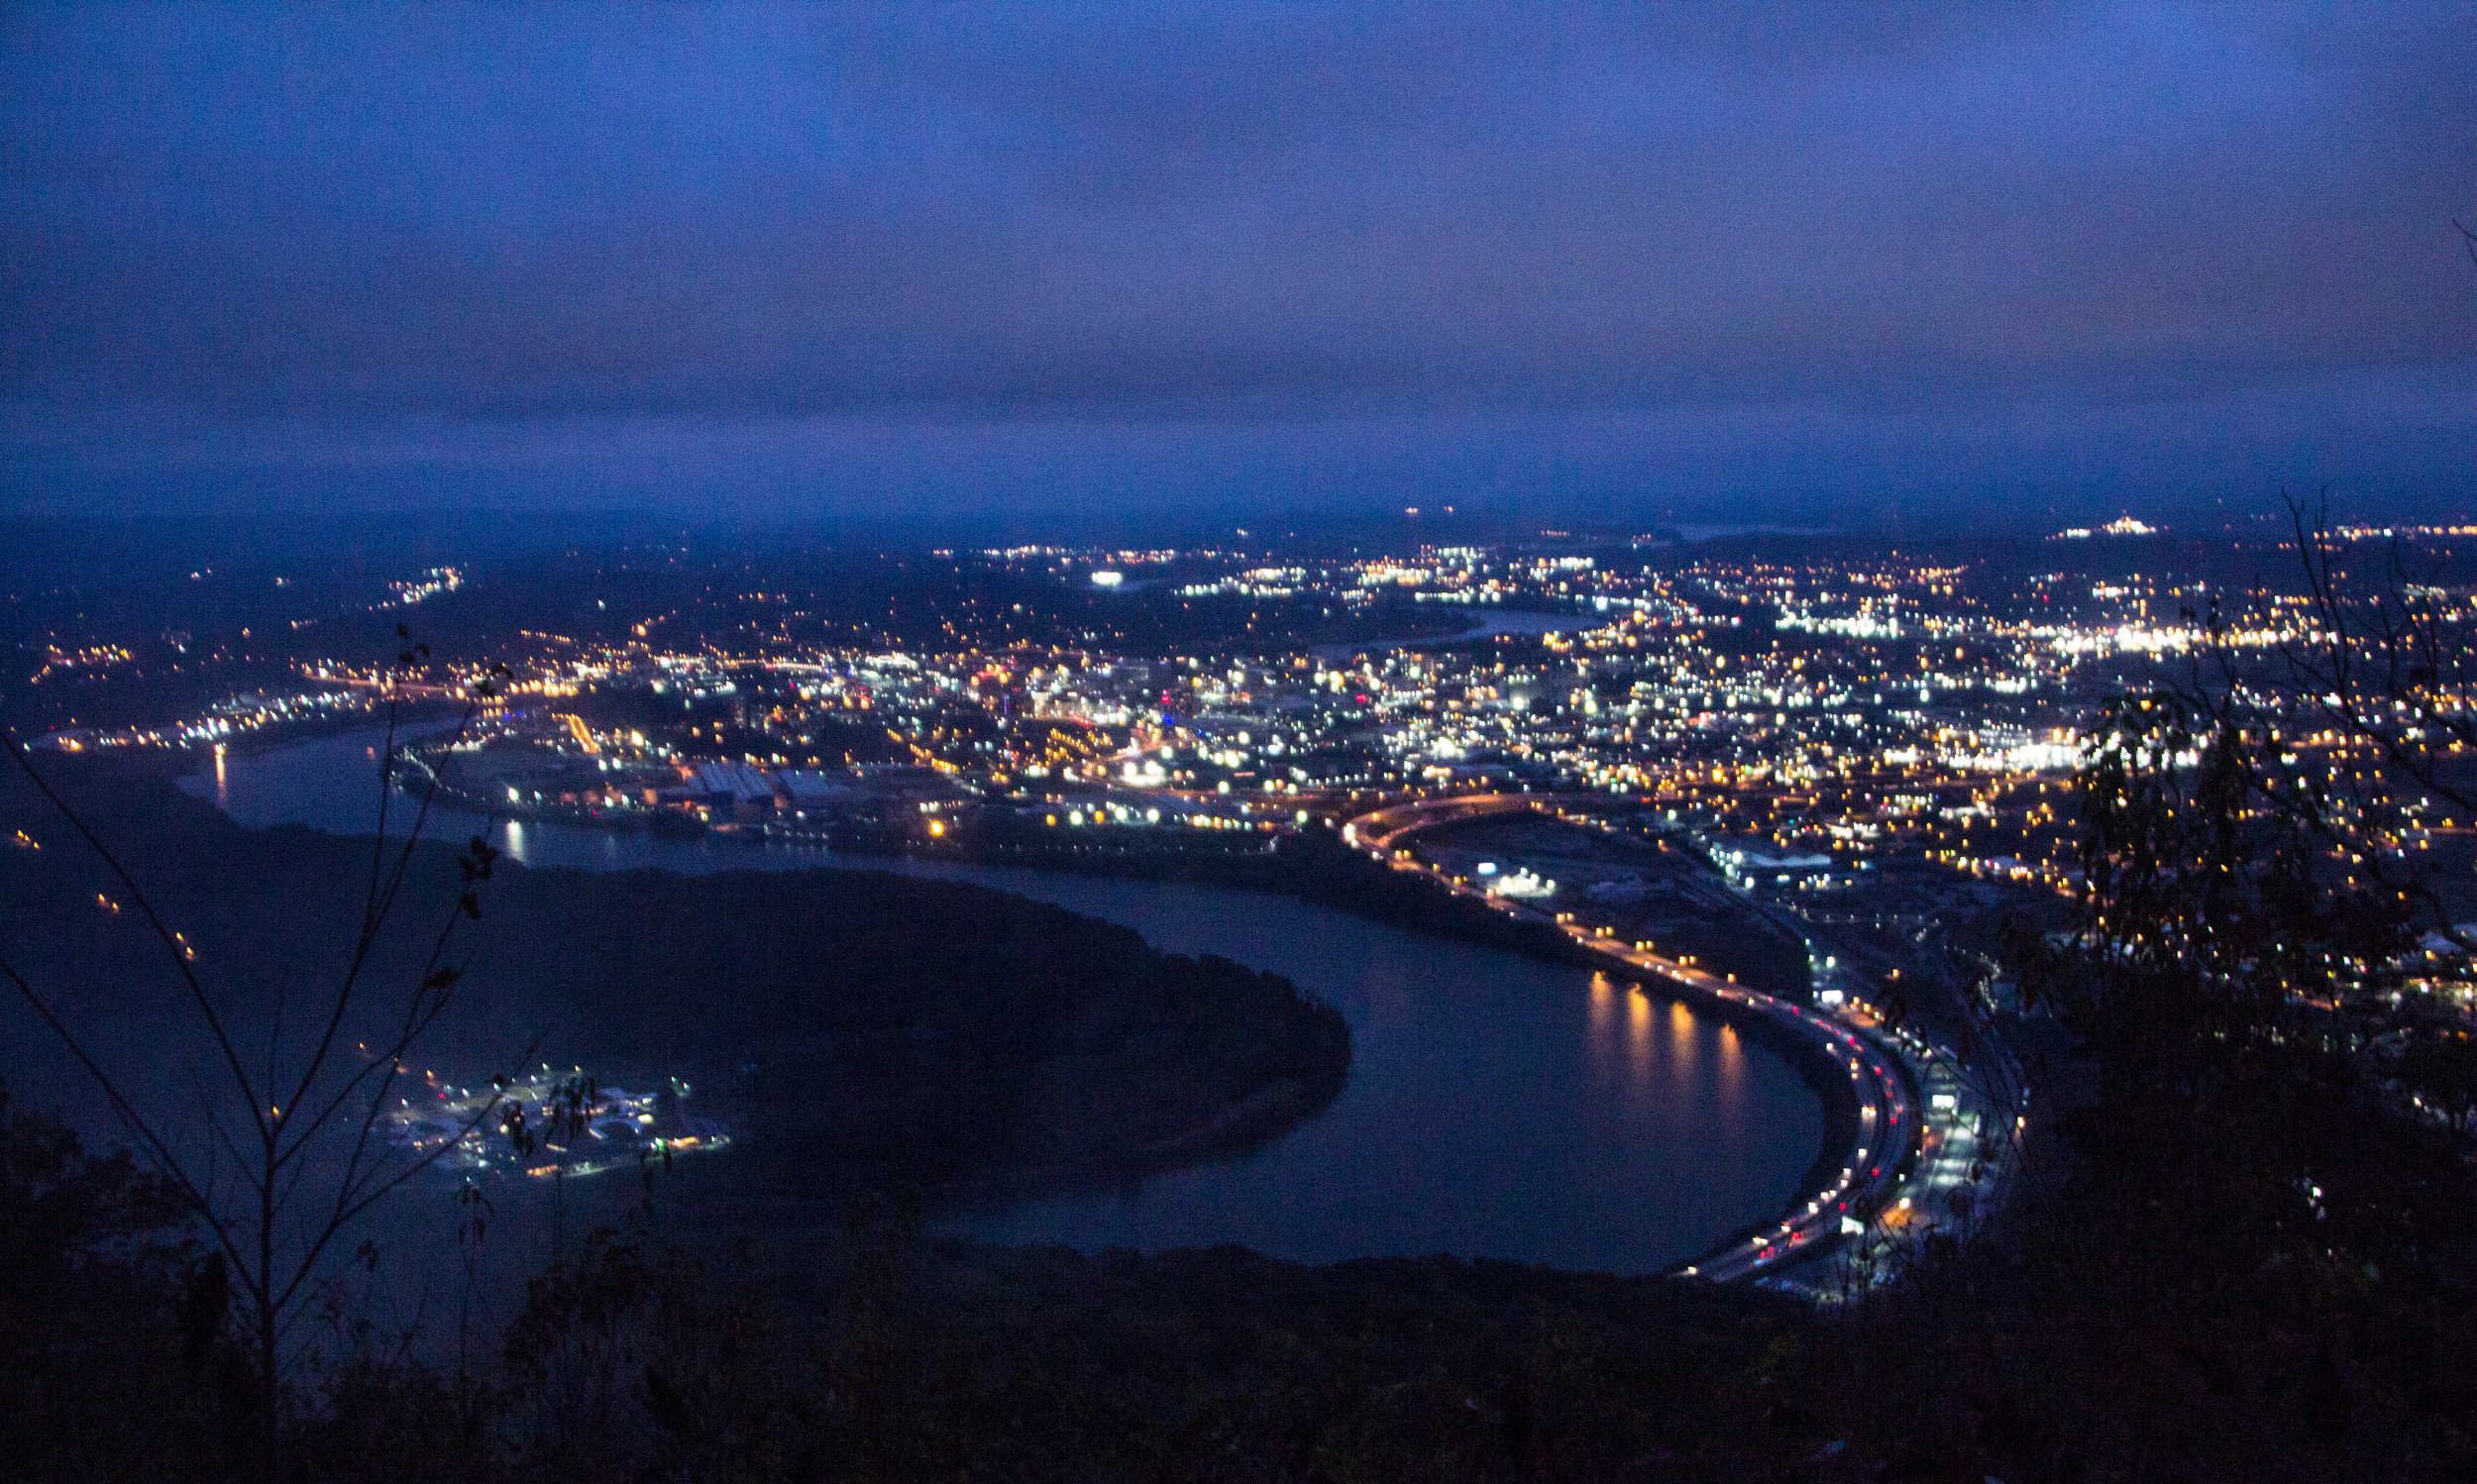 point-park-lookout-mountain-chattanooga-at-night-17.jpg